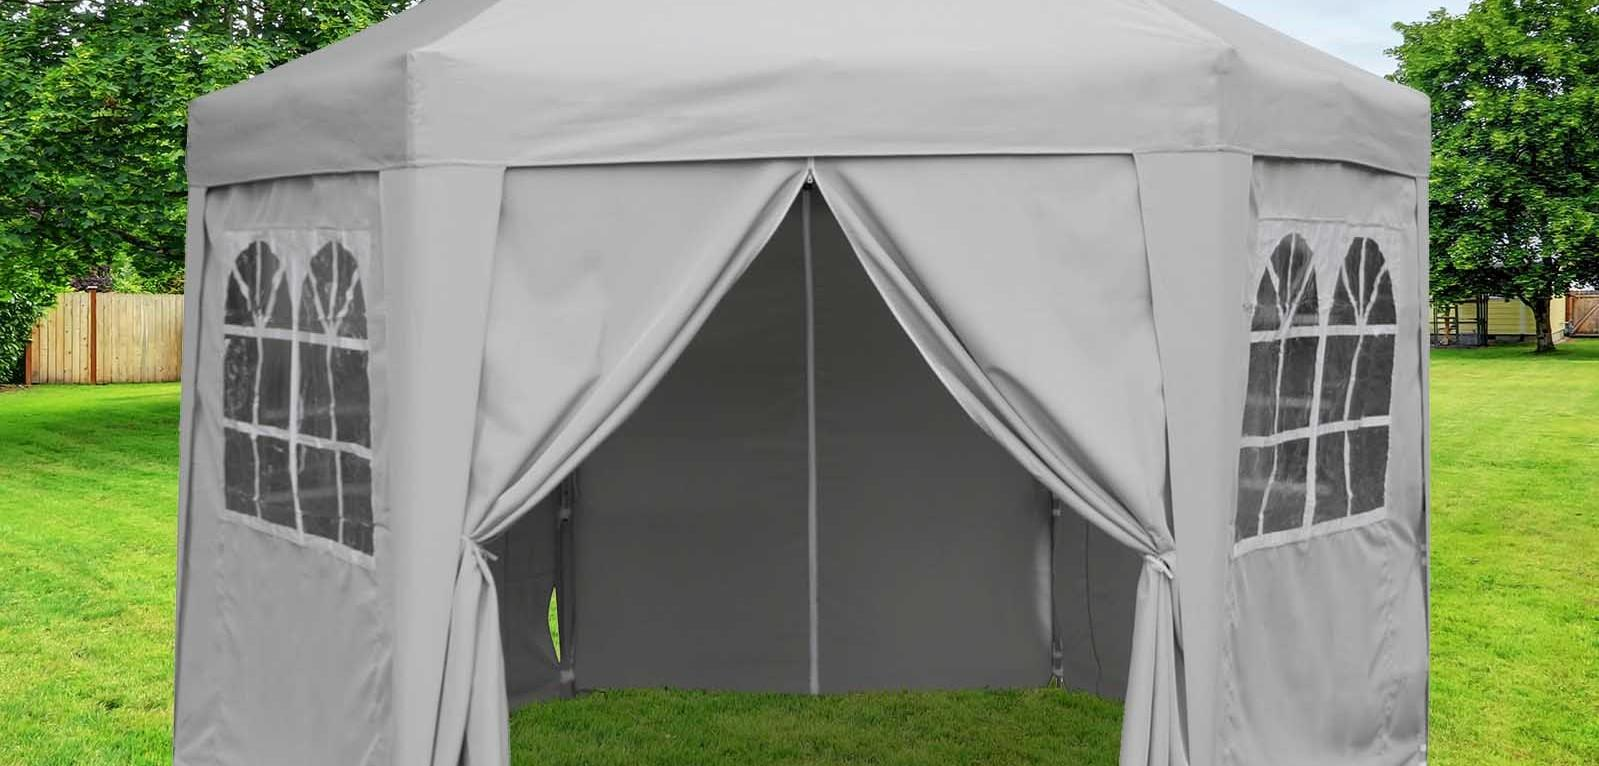 Hexagonal pop up gazebo